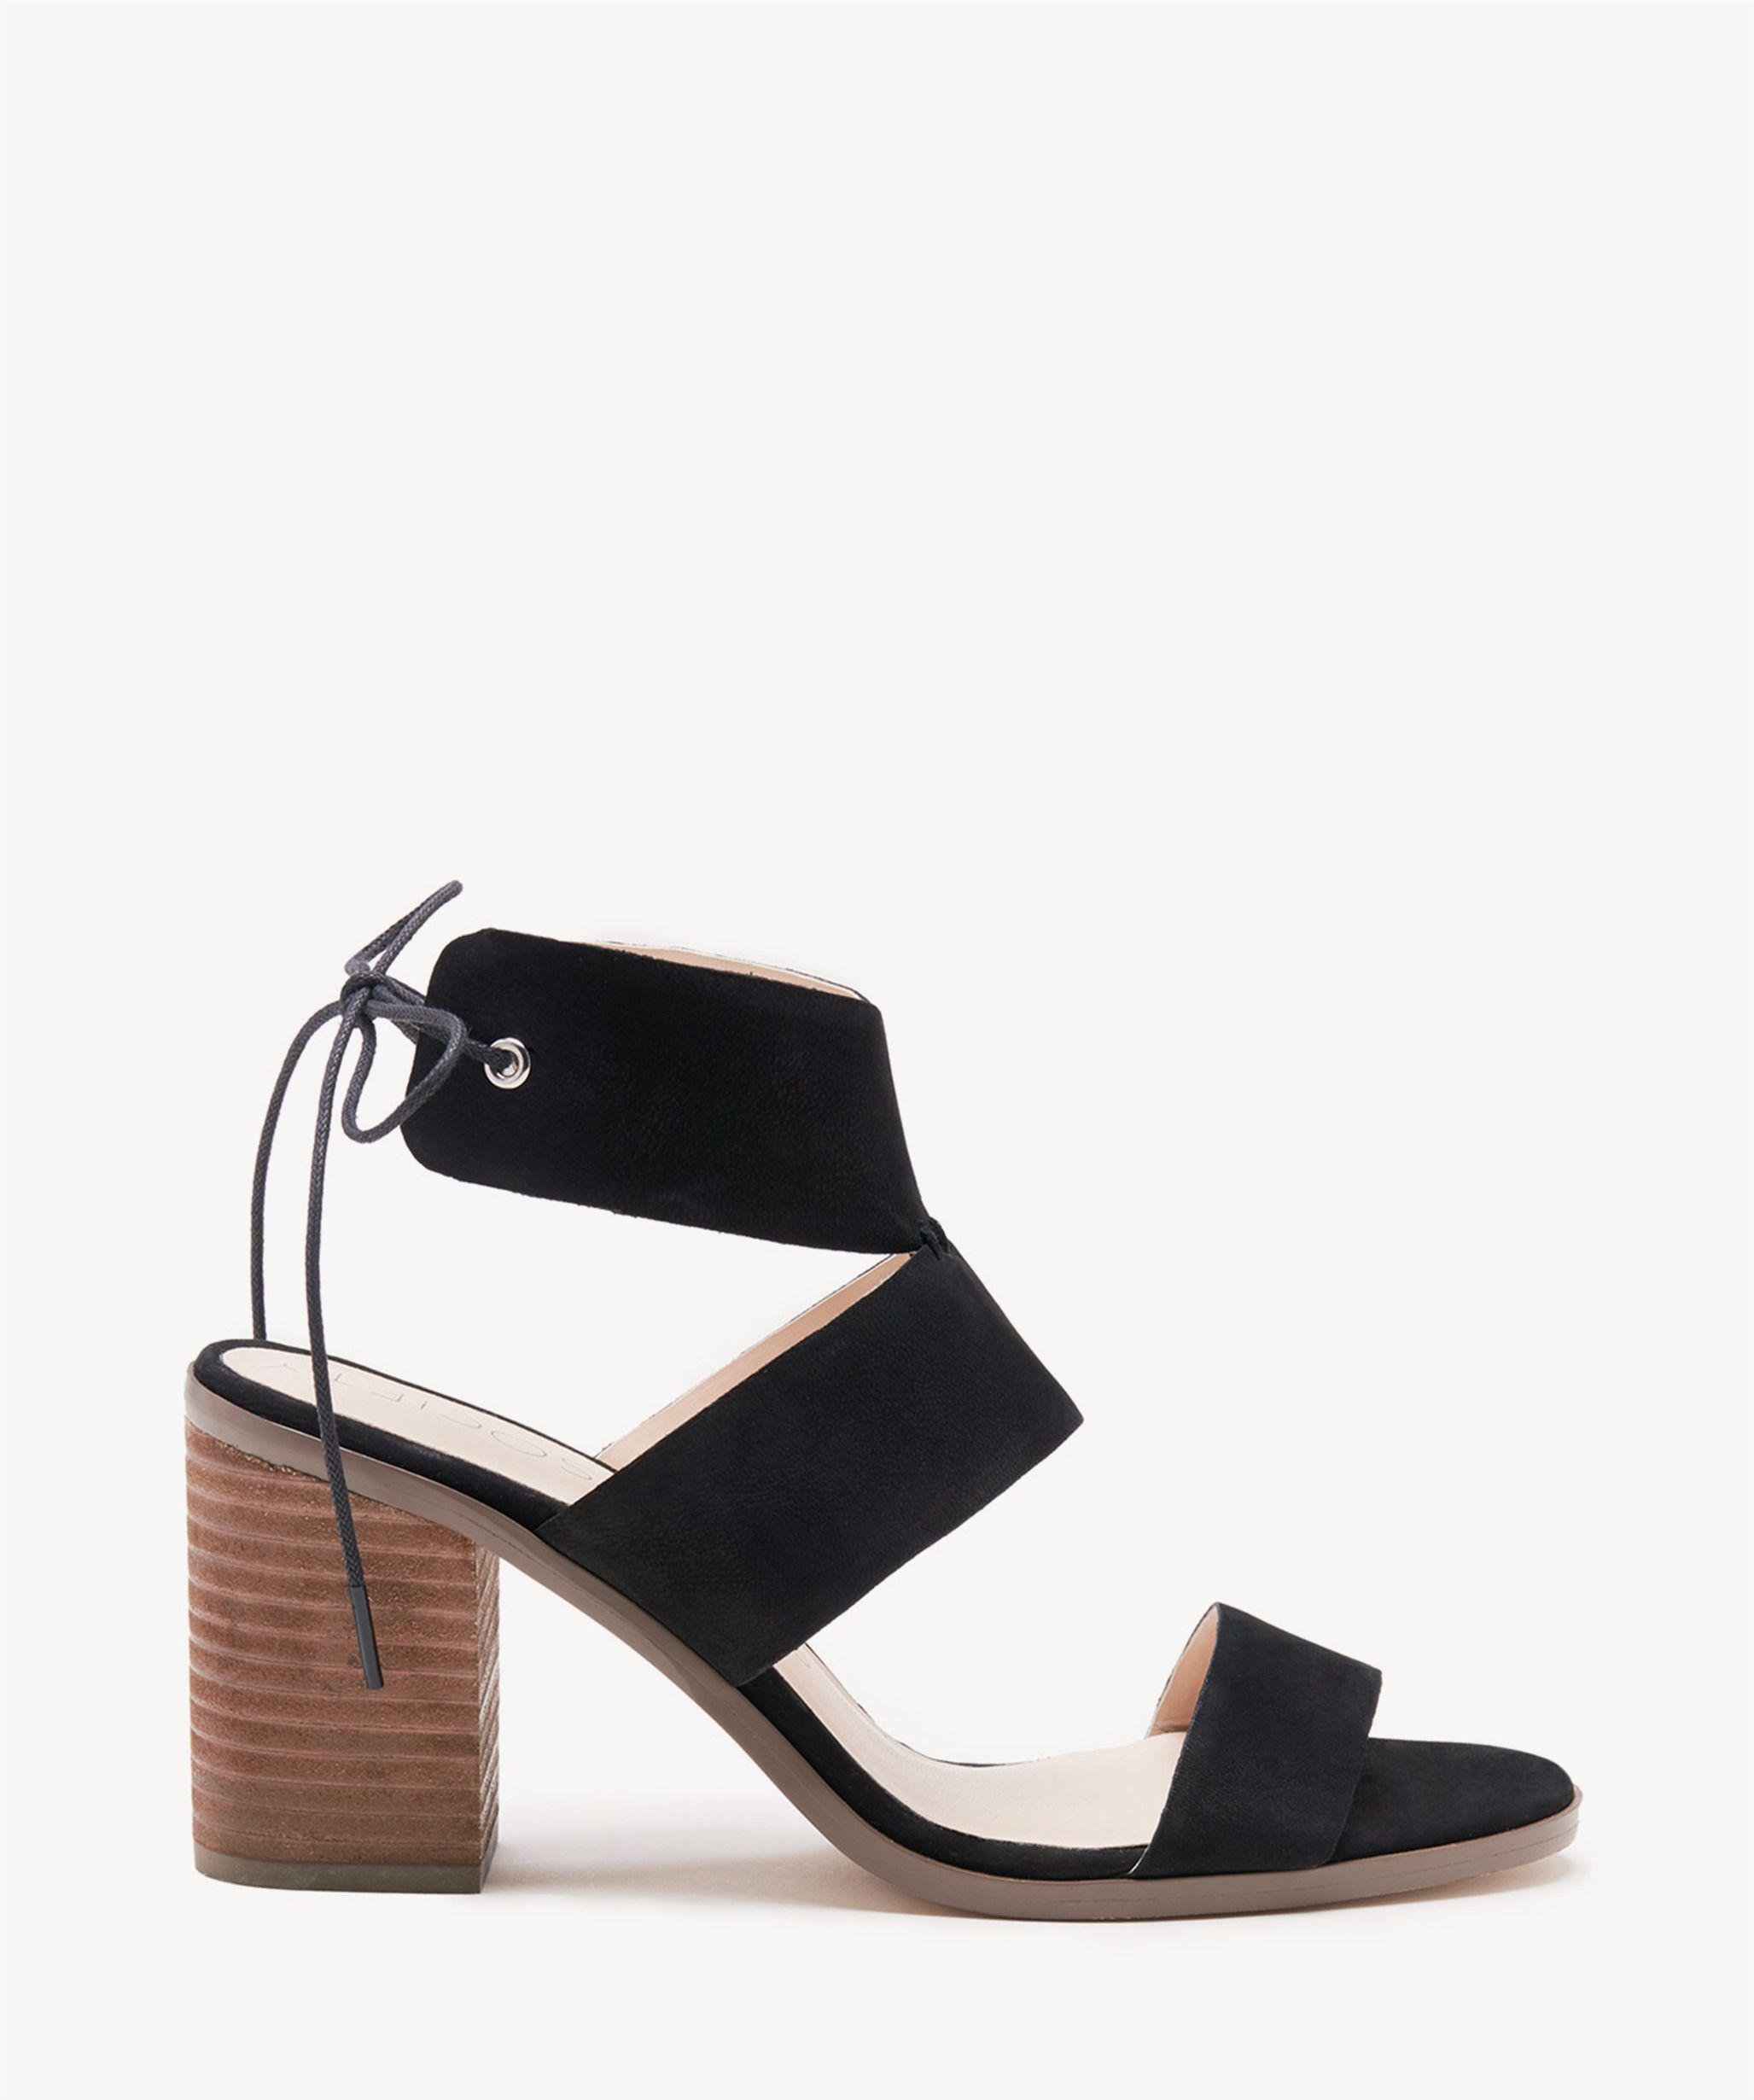 46de70579f3 Lyst - Sole Society Hayden Backless Heeled Sandal in Black